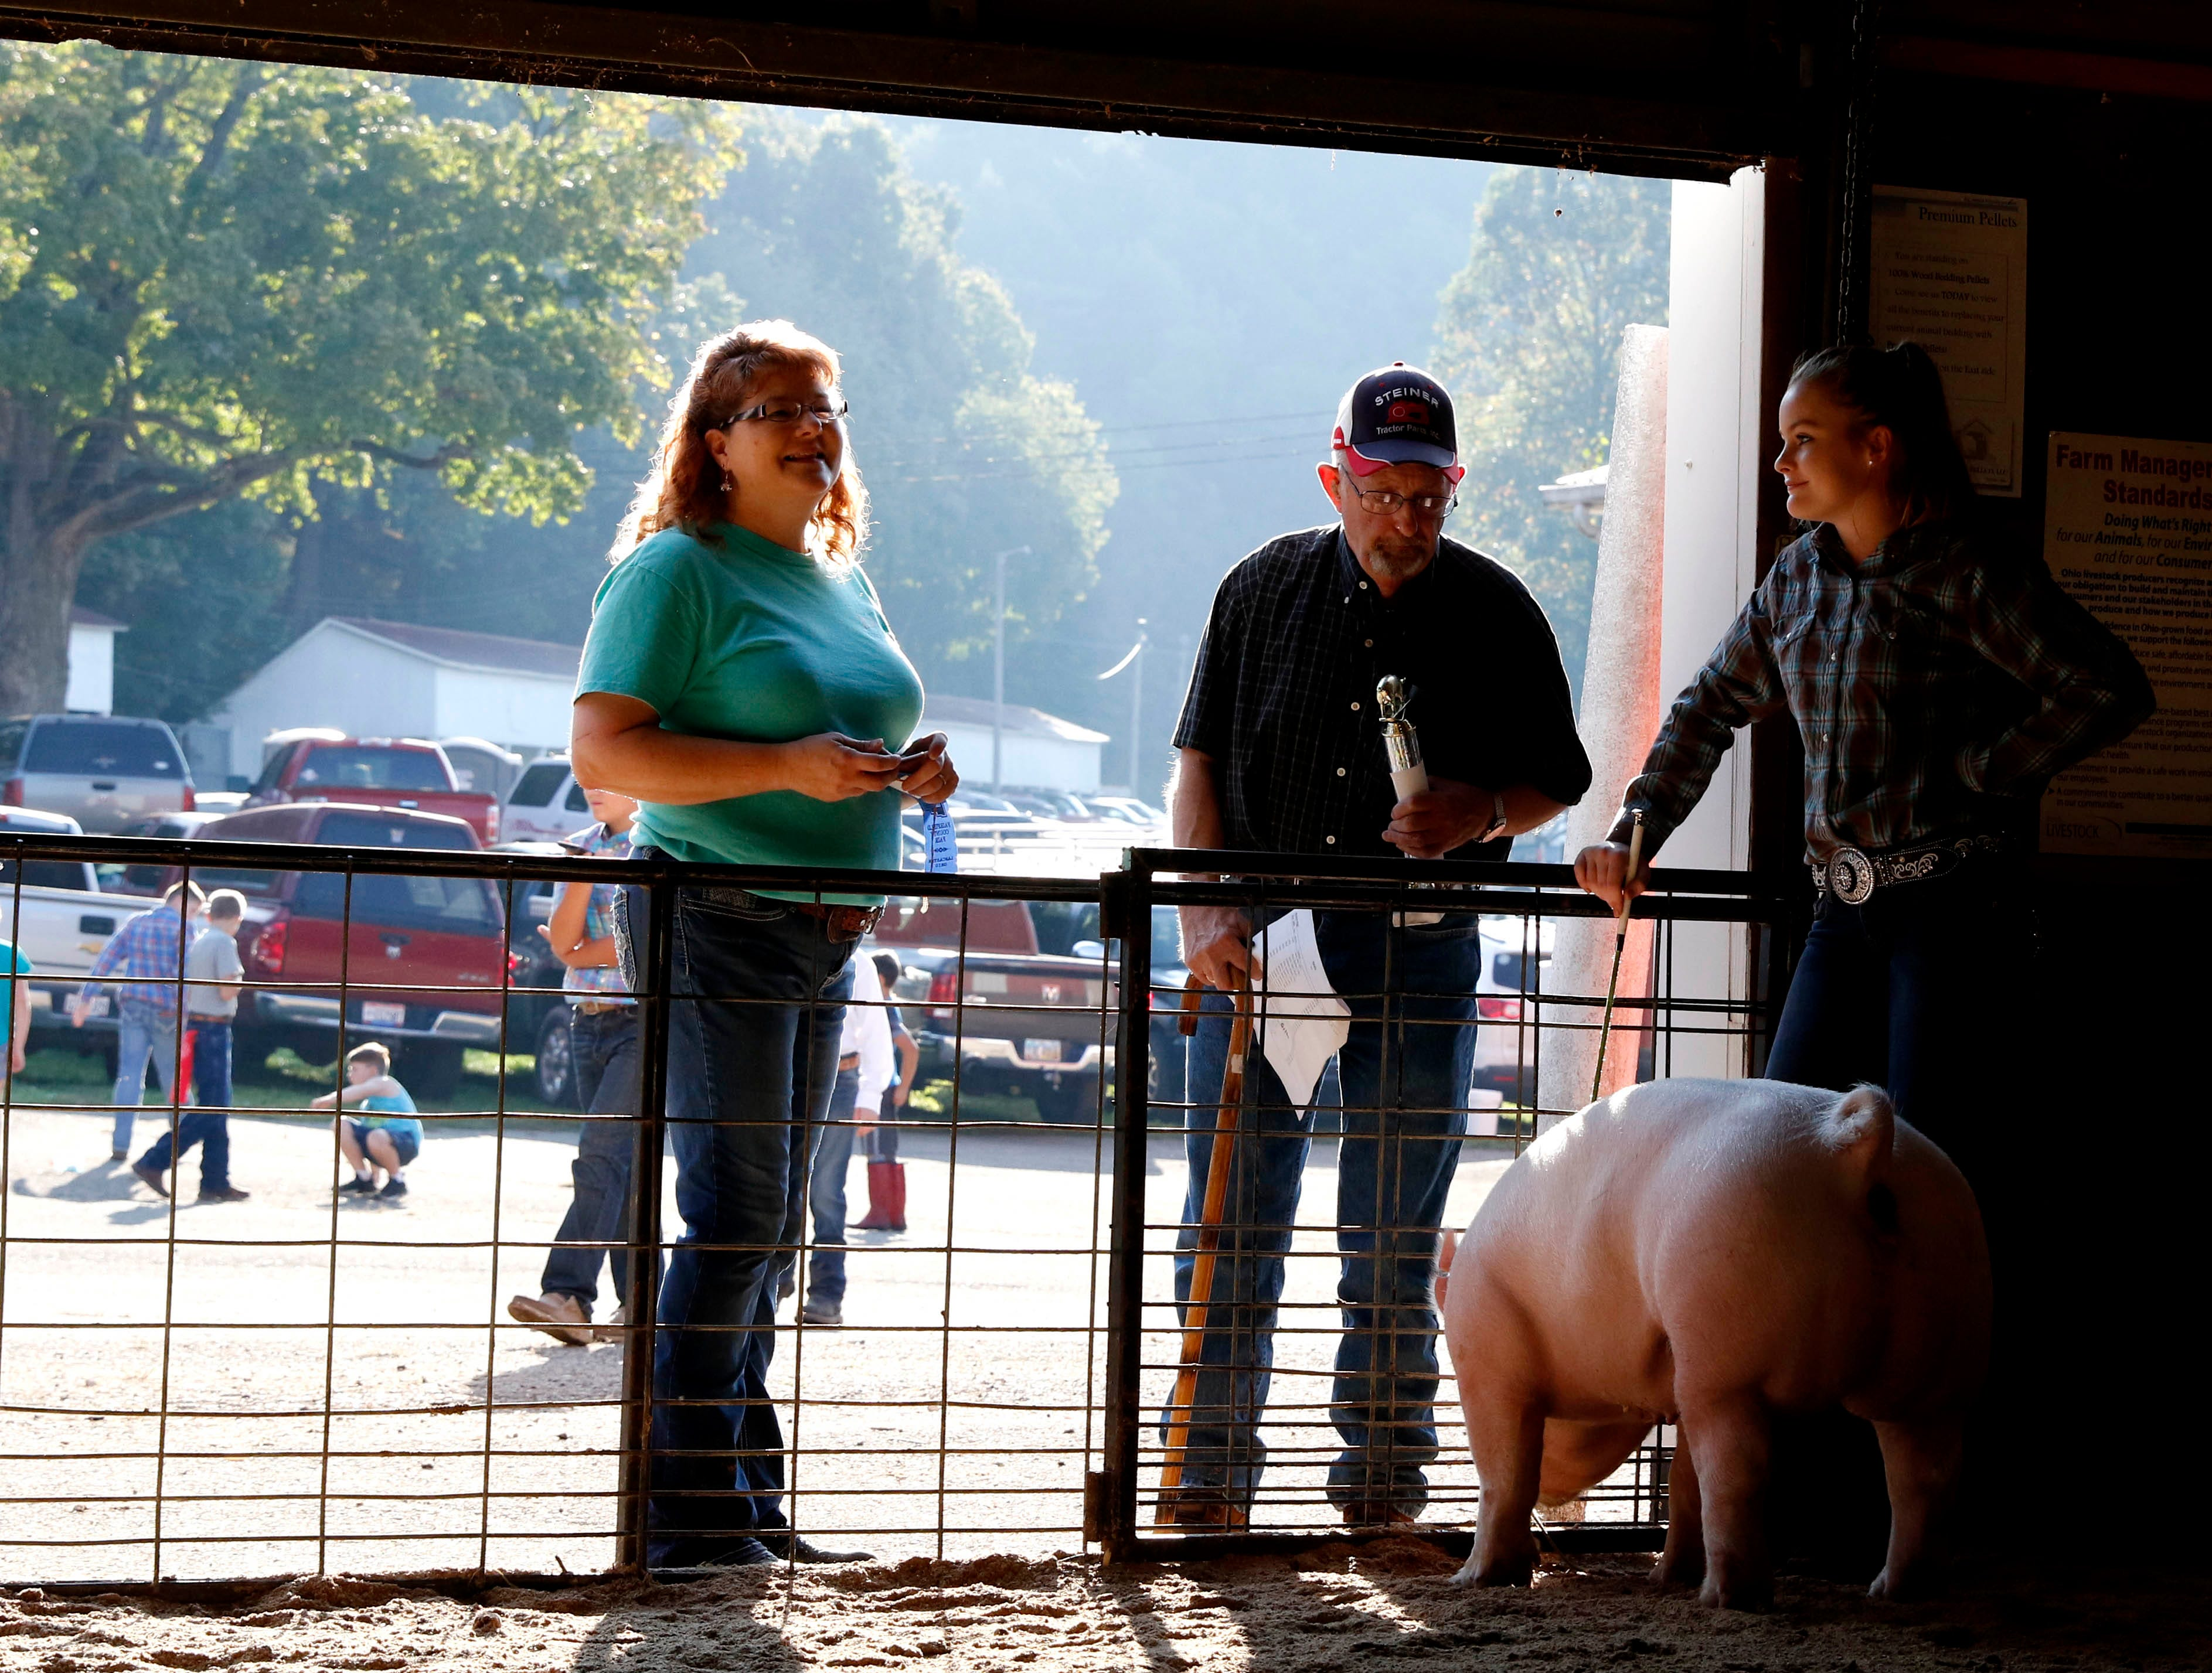 Steve Smith, center, congratulates Kaylee Sharp, 15, from Stoutsville, as he talks to her and her mother Joy Sharp, left, Monday morning, Oct. 8, 2018, after Kaylee took second place in class 4 with her hog Iris at the Fairfield County Fair in Lancaster.